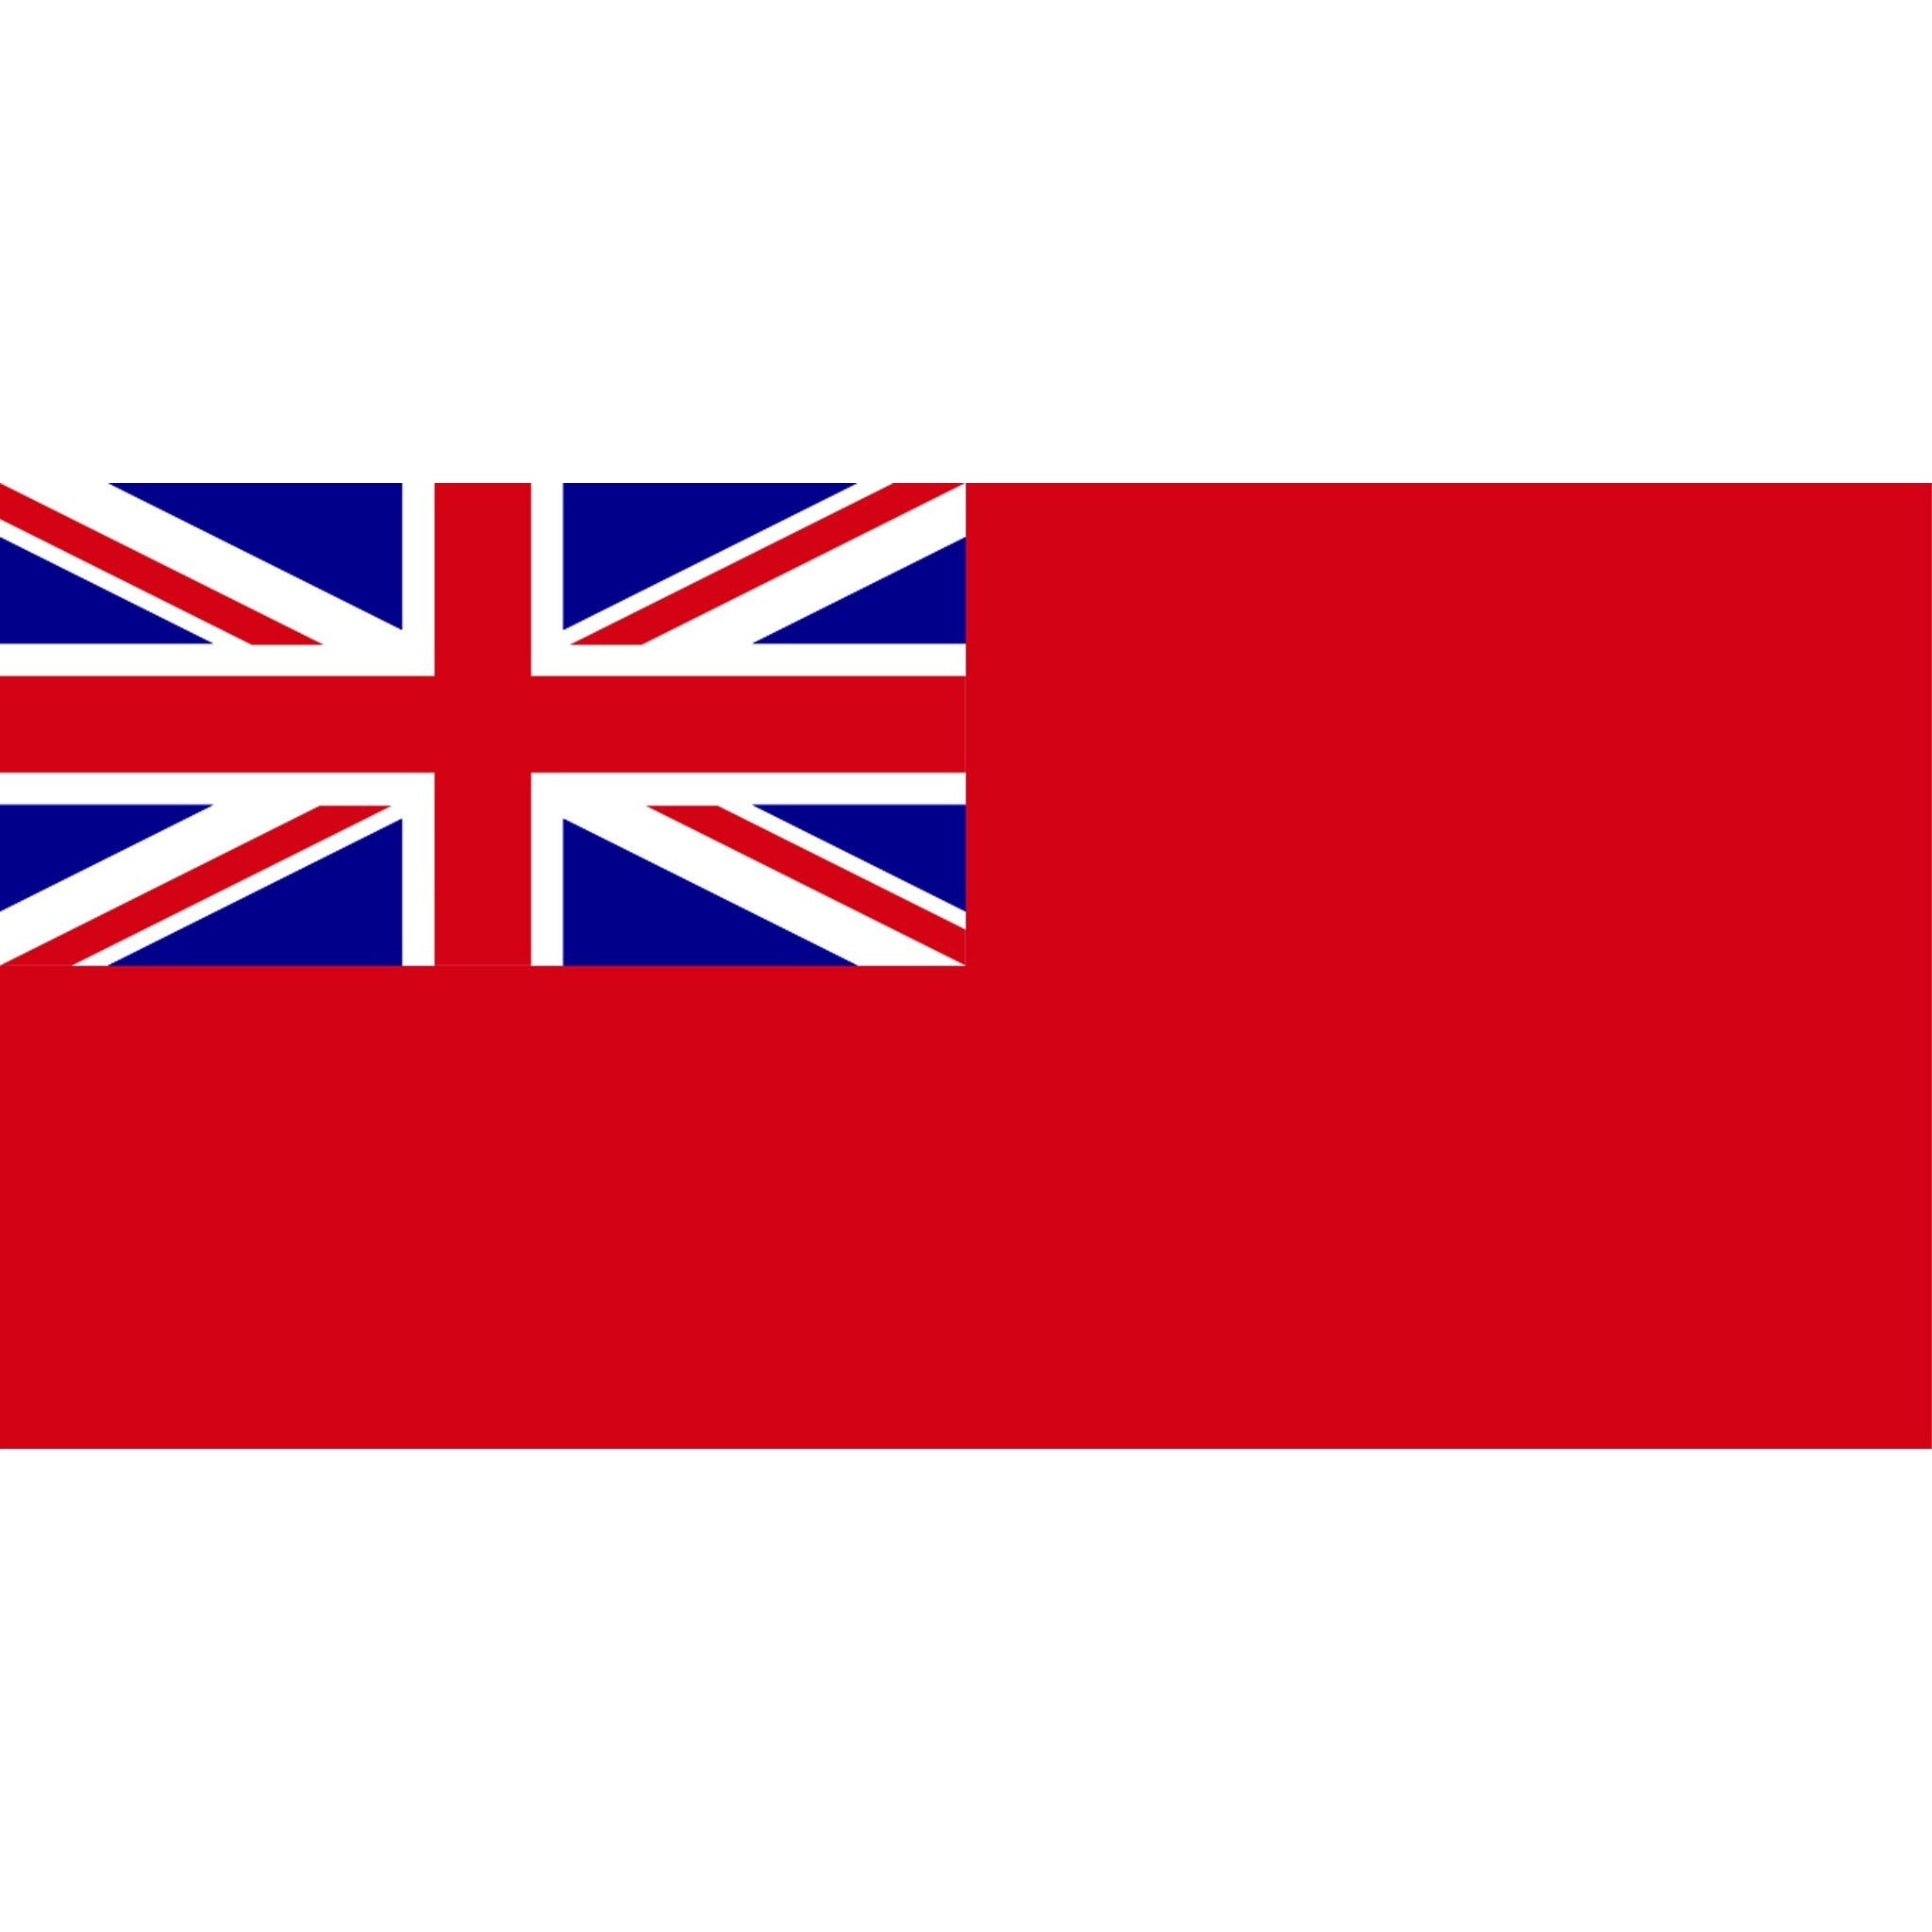 Red Ensign - Arthur Beale